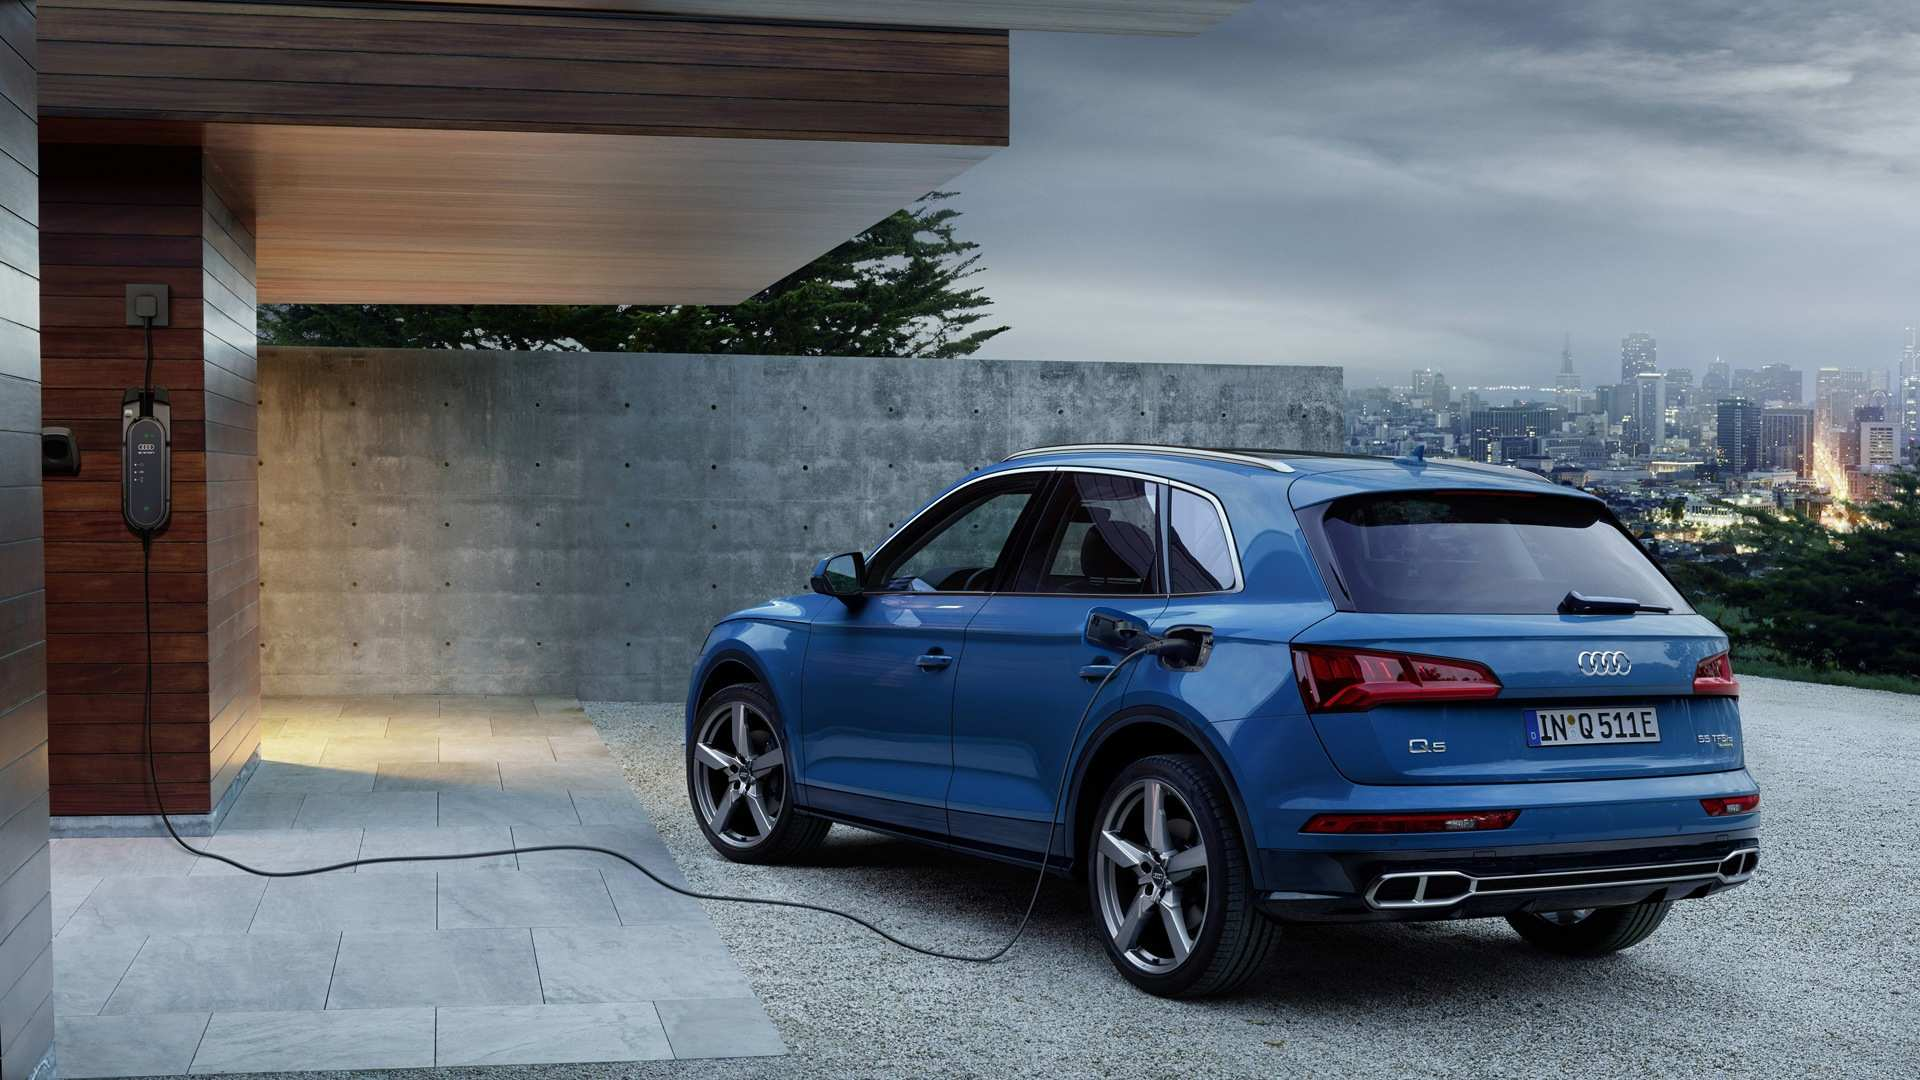 49 The Best Release Date Of 2020 Audi Q5 Exterior